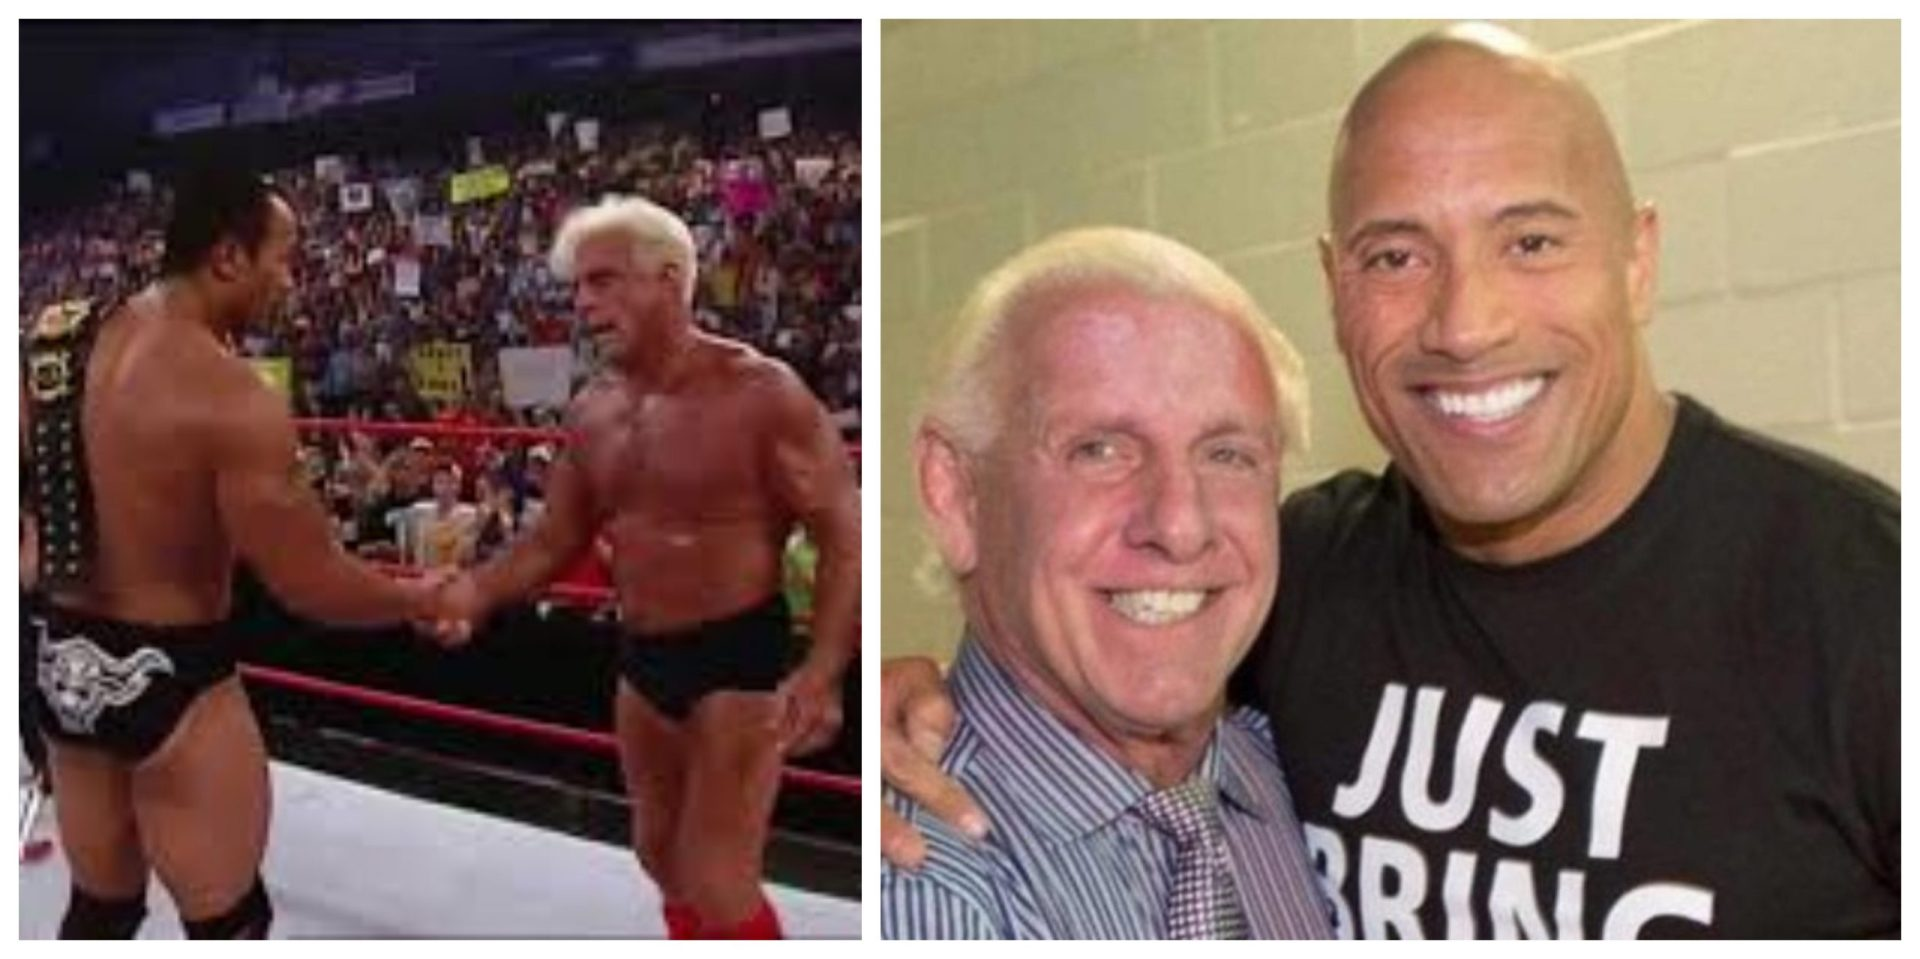 """They would've had to build new arenas"": Ric Flair feels a rivalry with The Rock would have shattered records - THE SPORTS ROOM"